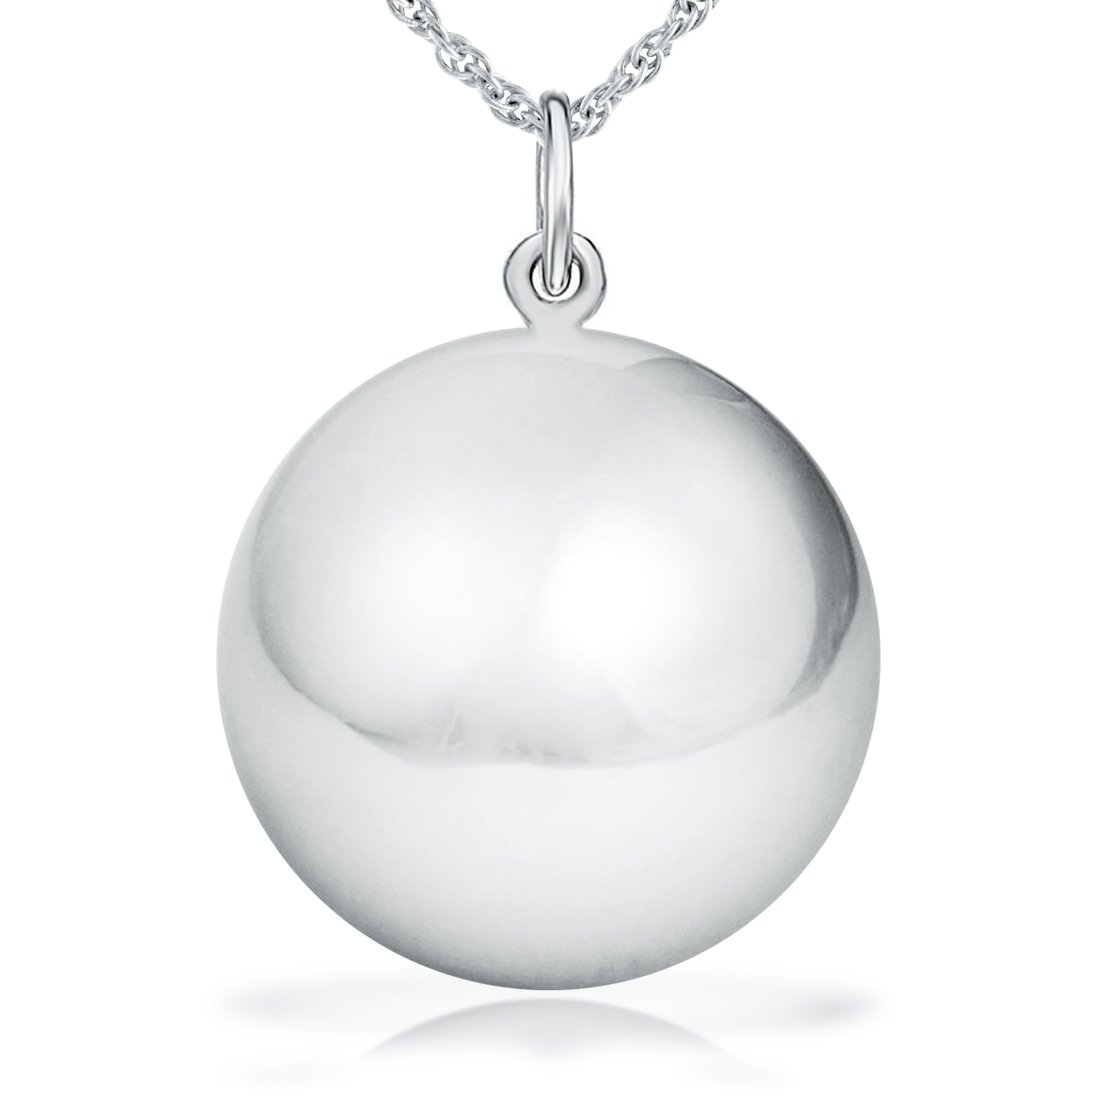 18mm Sterling Silver Harmony Ball  925 Sterling Silver Chain   Gift Box